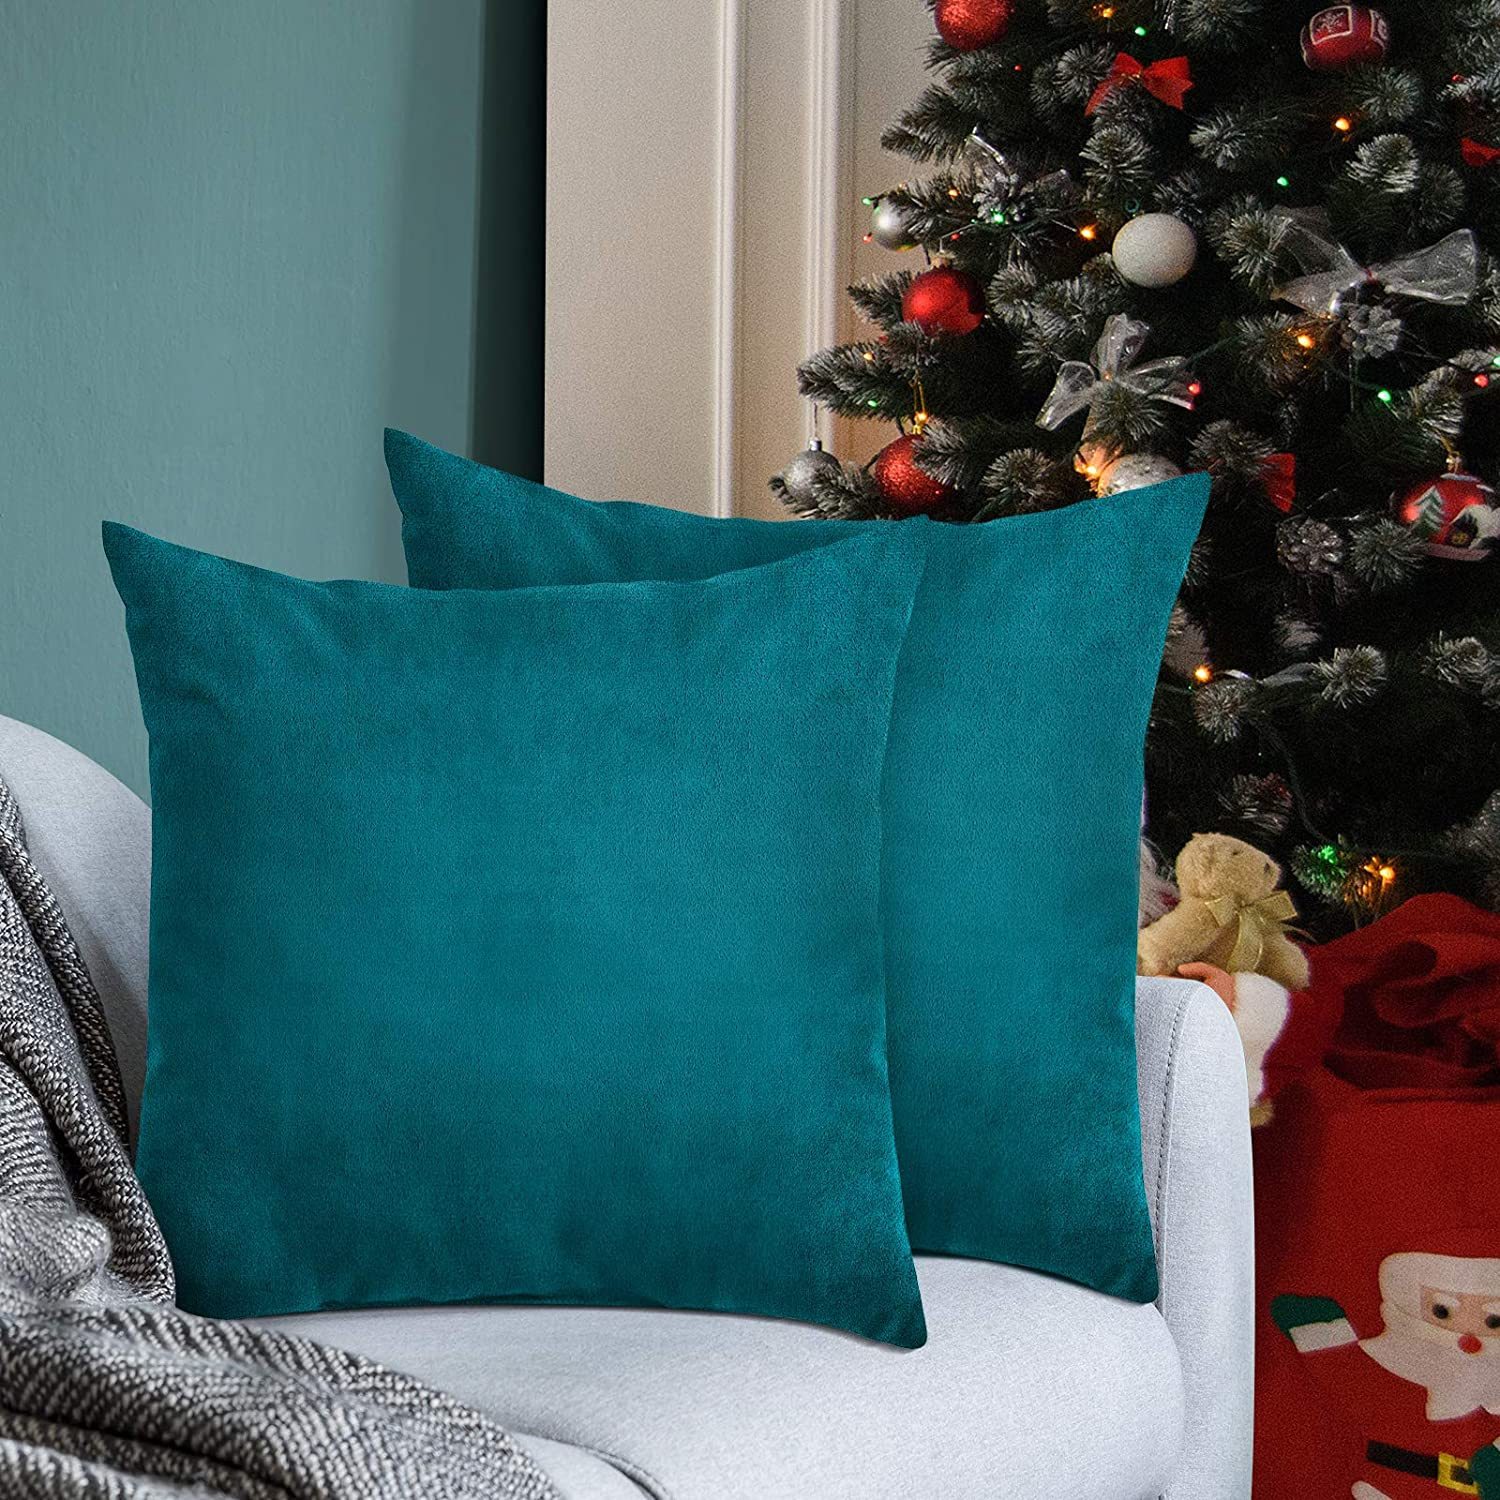 Syntus Pack of 2 Christmas Velvet Soft Throw Pillow Covers Square Decorative Pillow Cushion Case Teal Green for Home Decor Car Bed Sofa, 18 x 18 inches